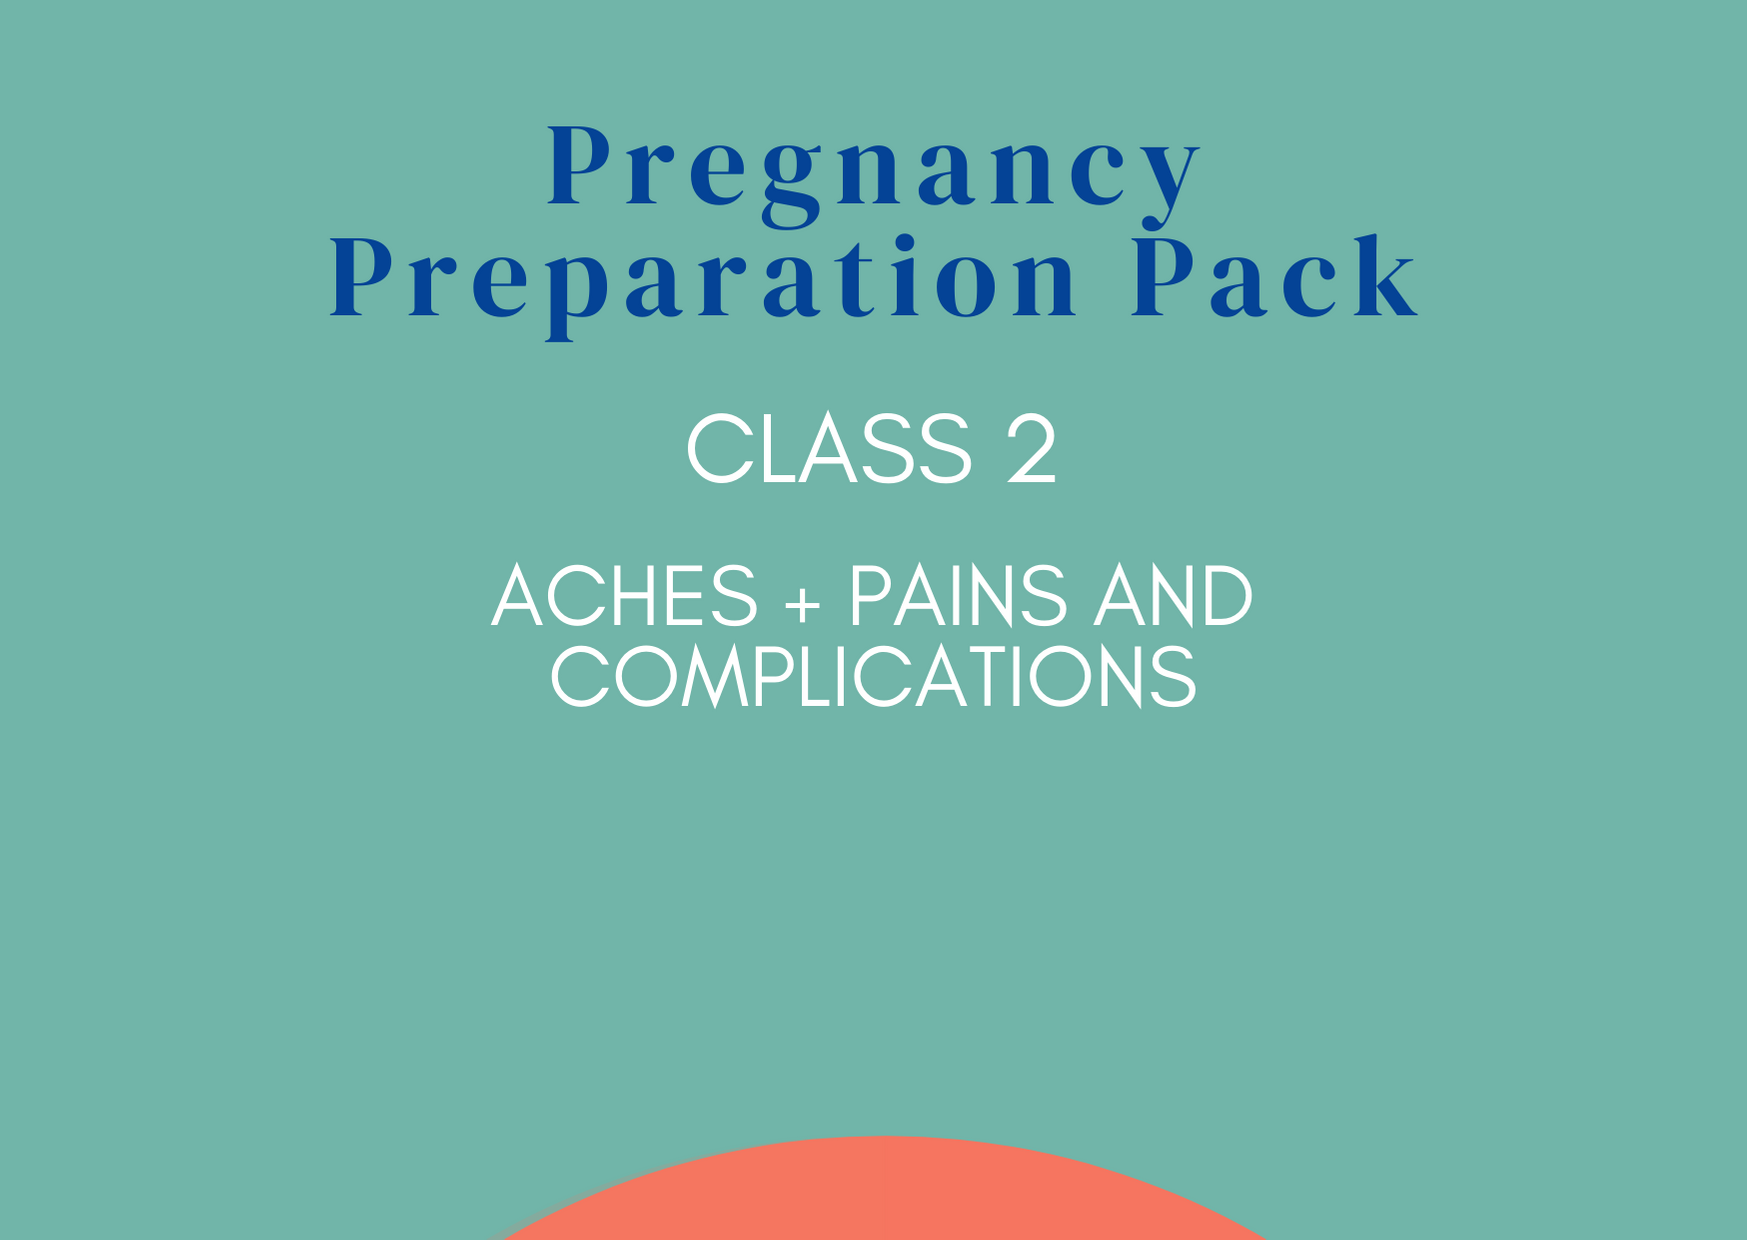 2. Aches & Pains and Complications